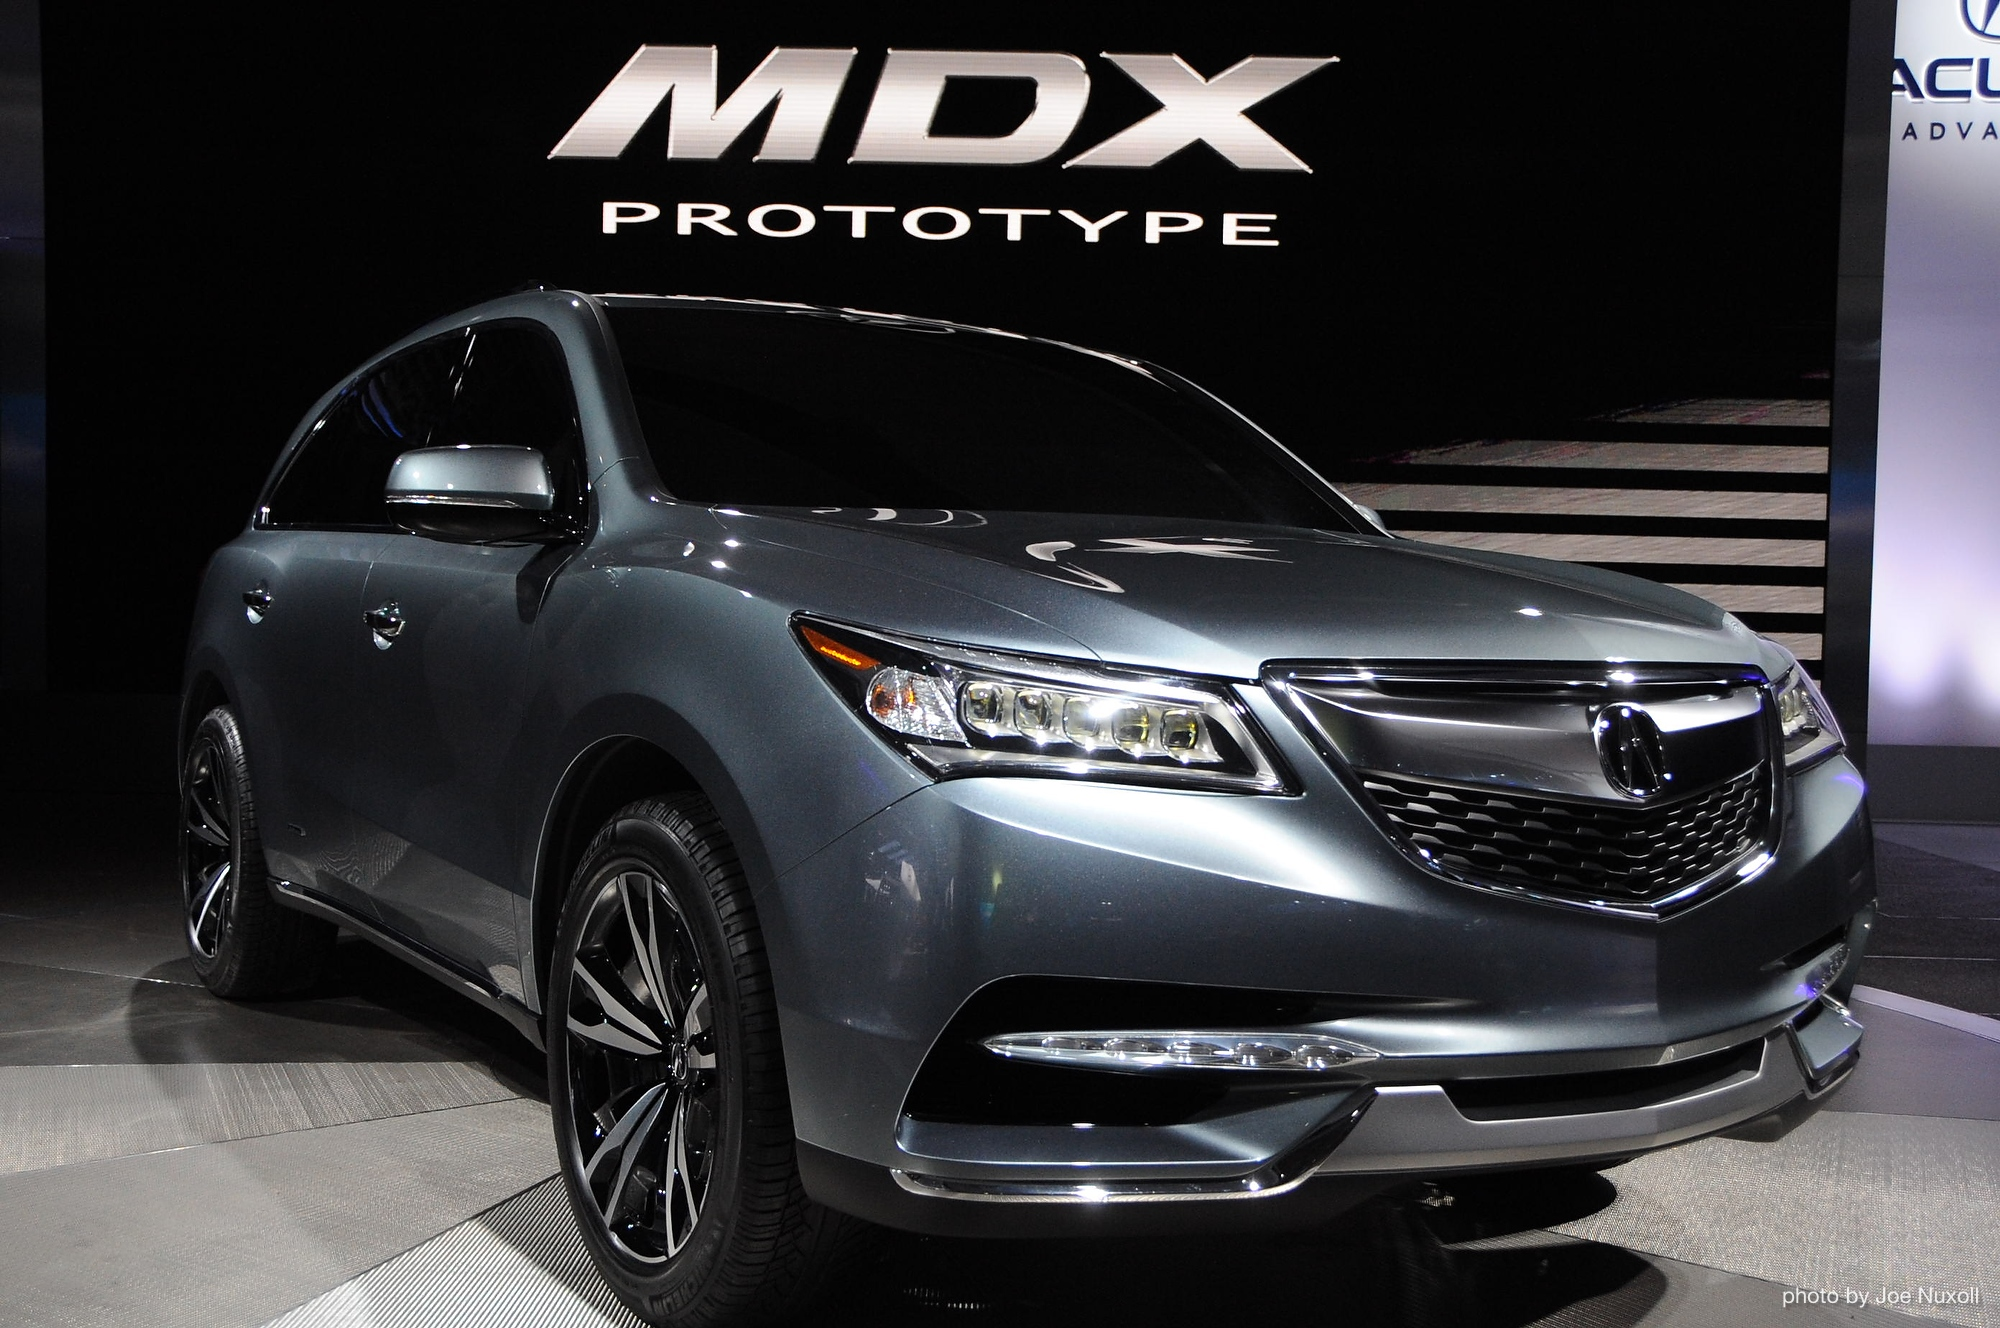 gaddidekho images left side acura pictures com car mdx